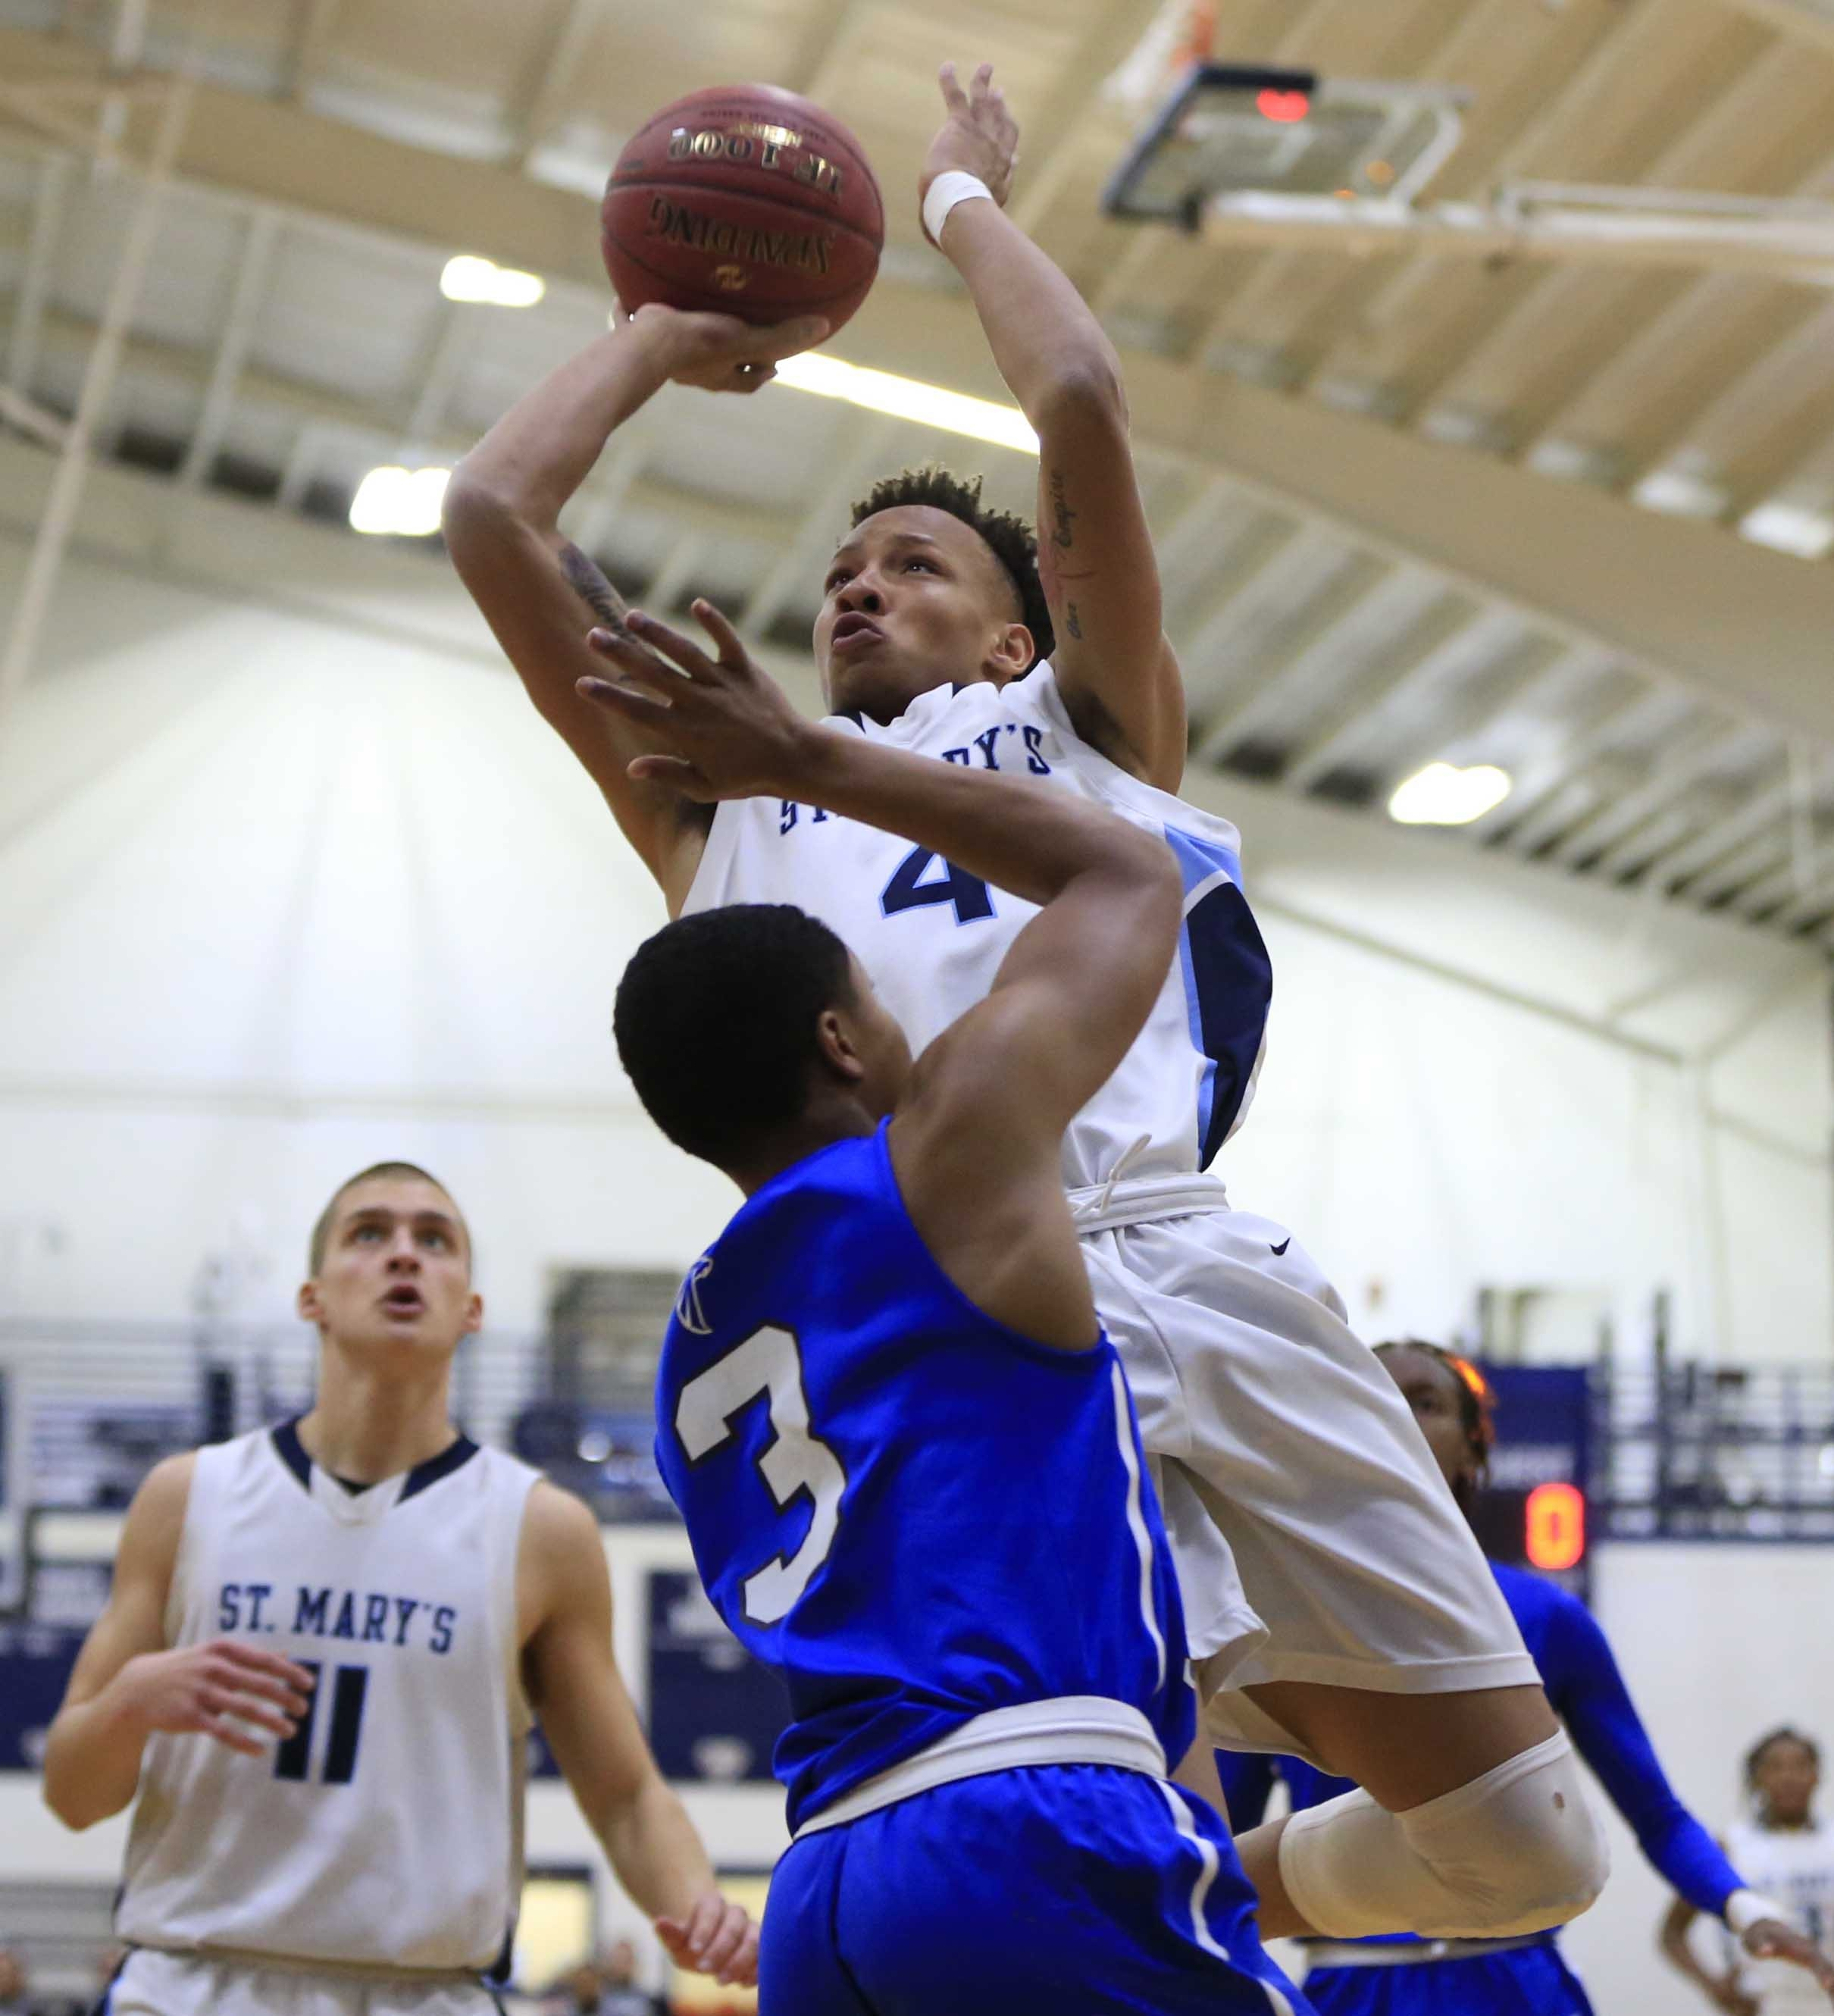 Takal Molson drives to the basket for St. Mary's of Lancaster in 2016. (Harry Scull Jr./Buffalo News)